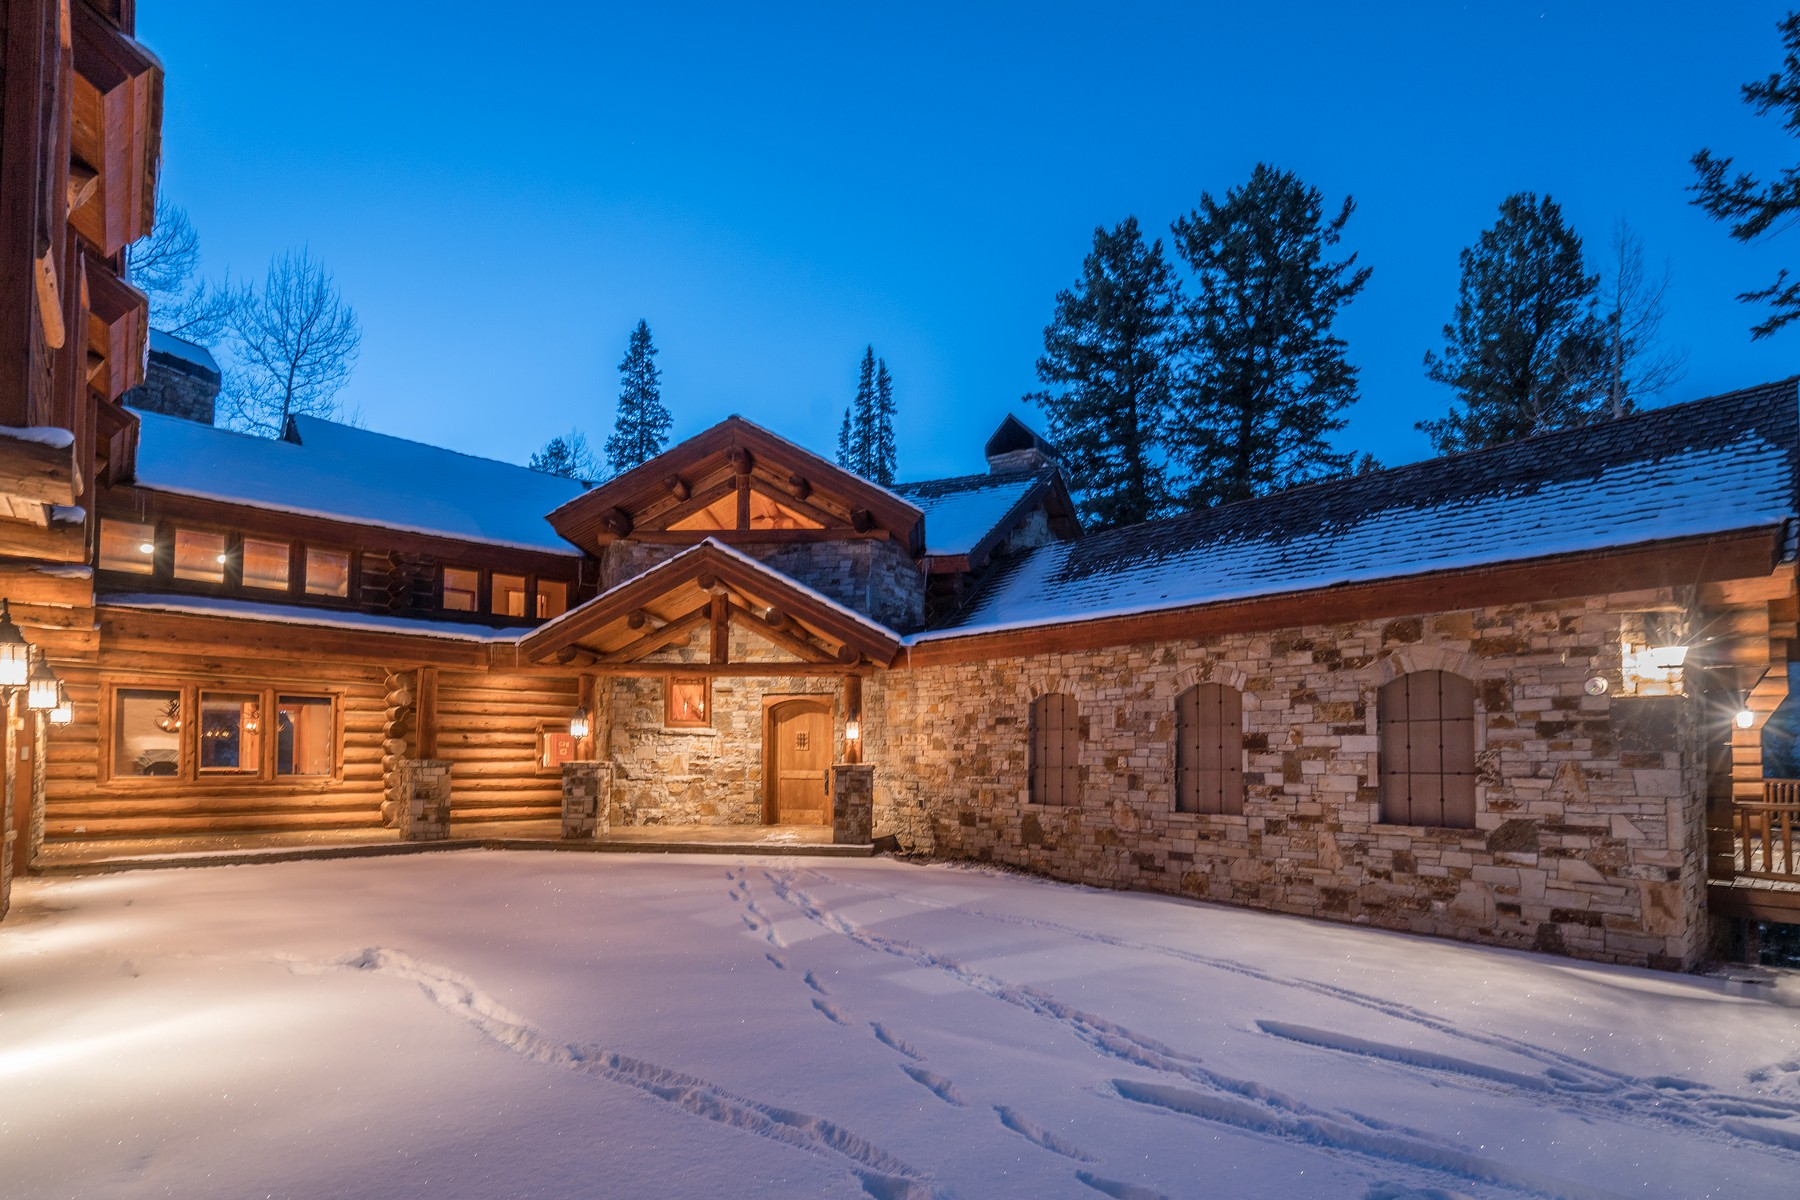 Casa Unifamiliar por un Venta en 130 Highlands Way Telluride, Colorado, 81435 Estados Unidos